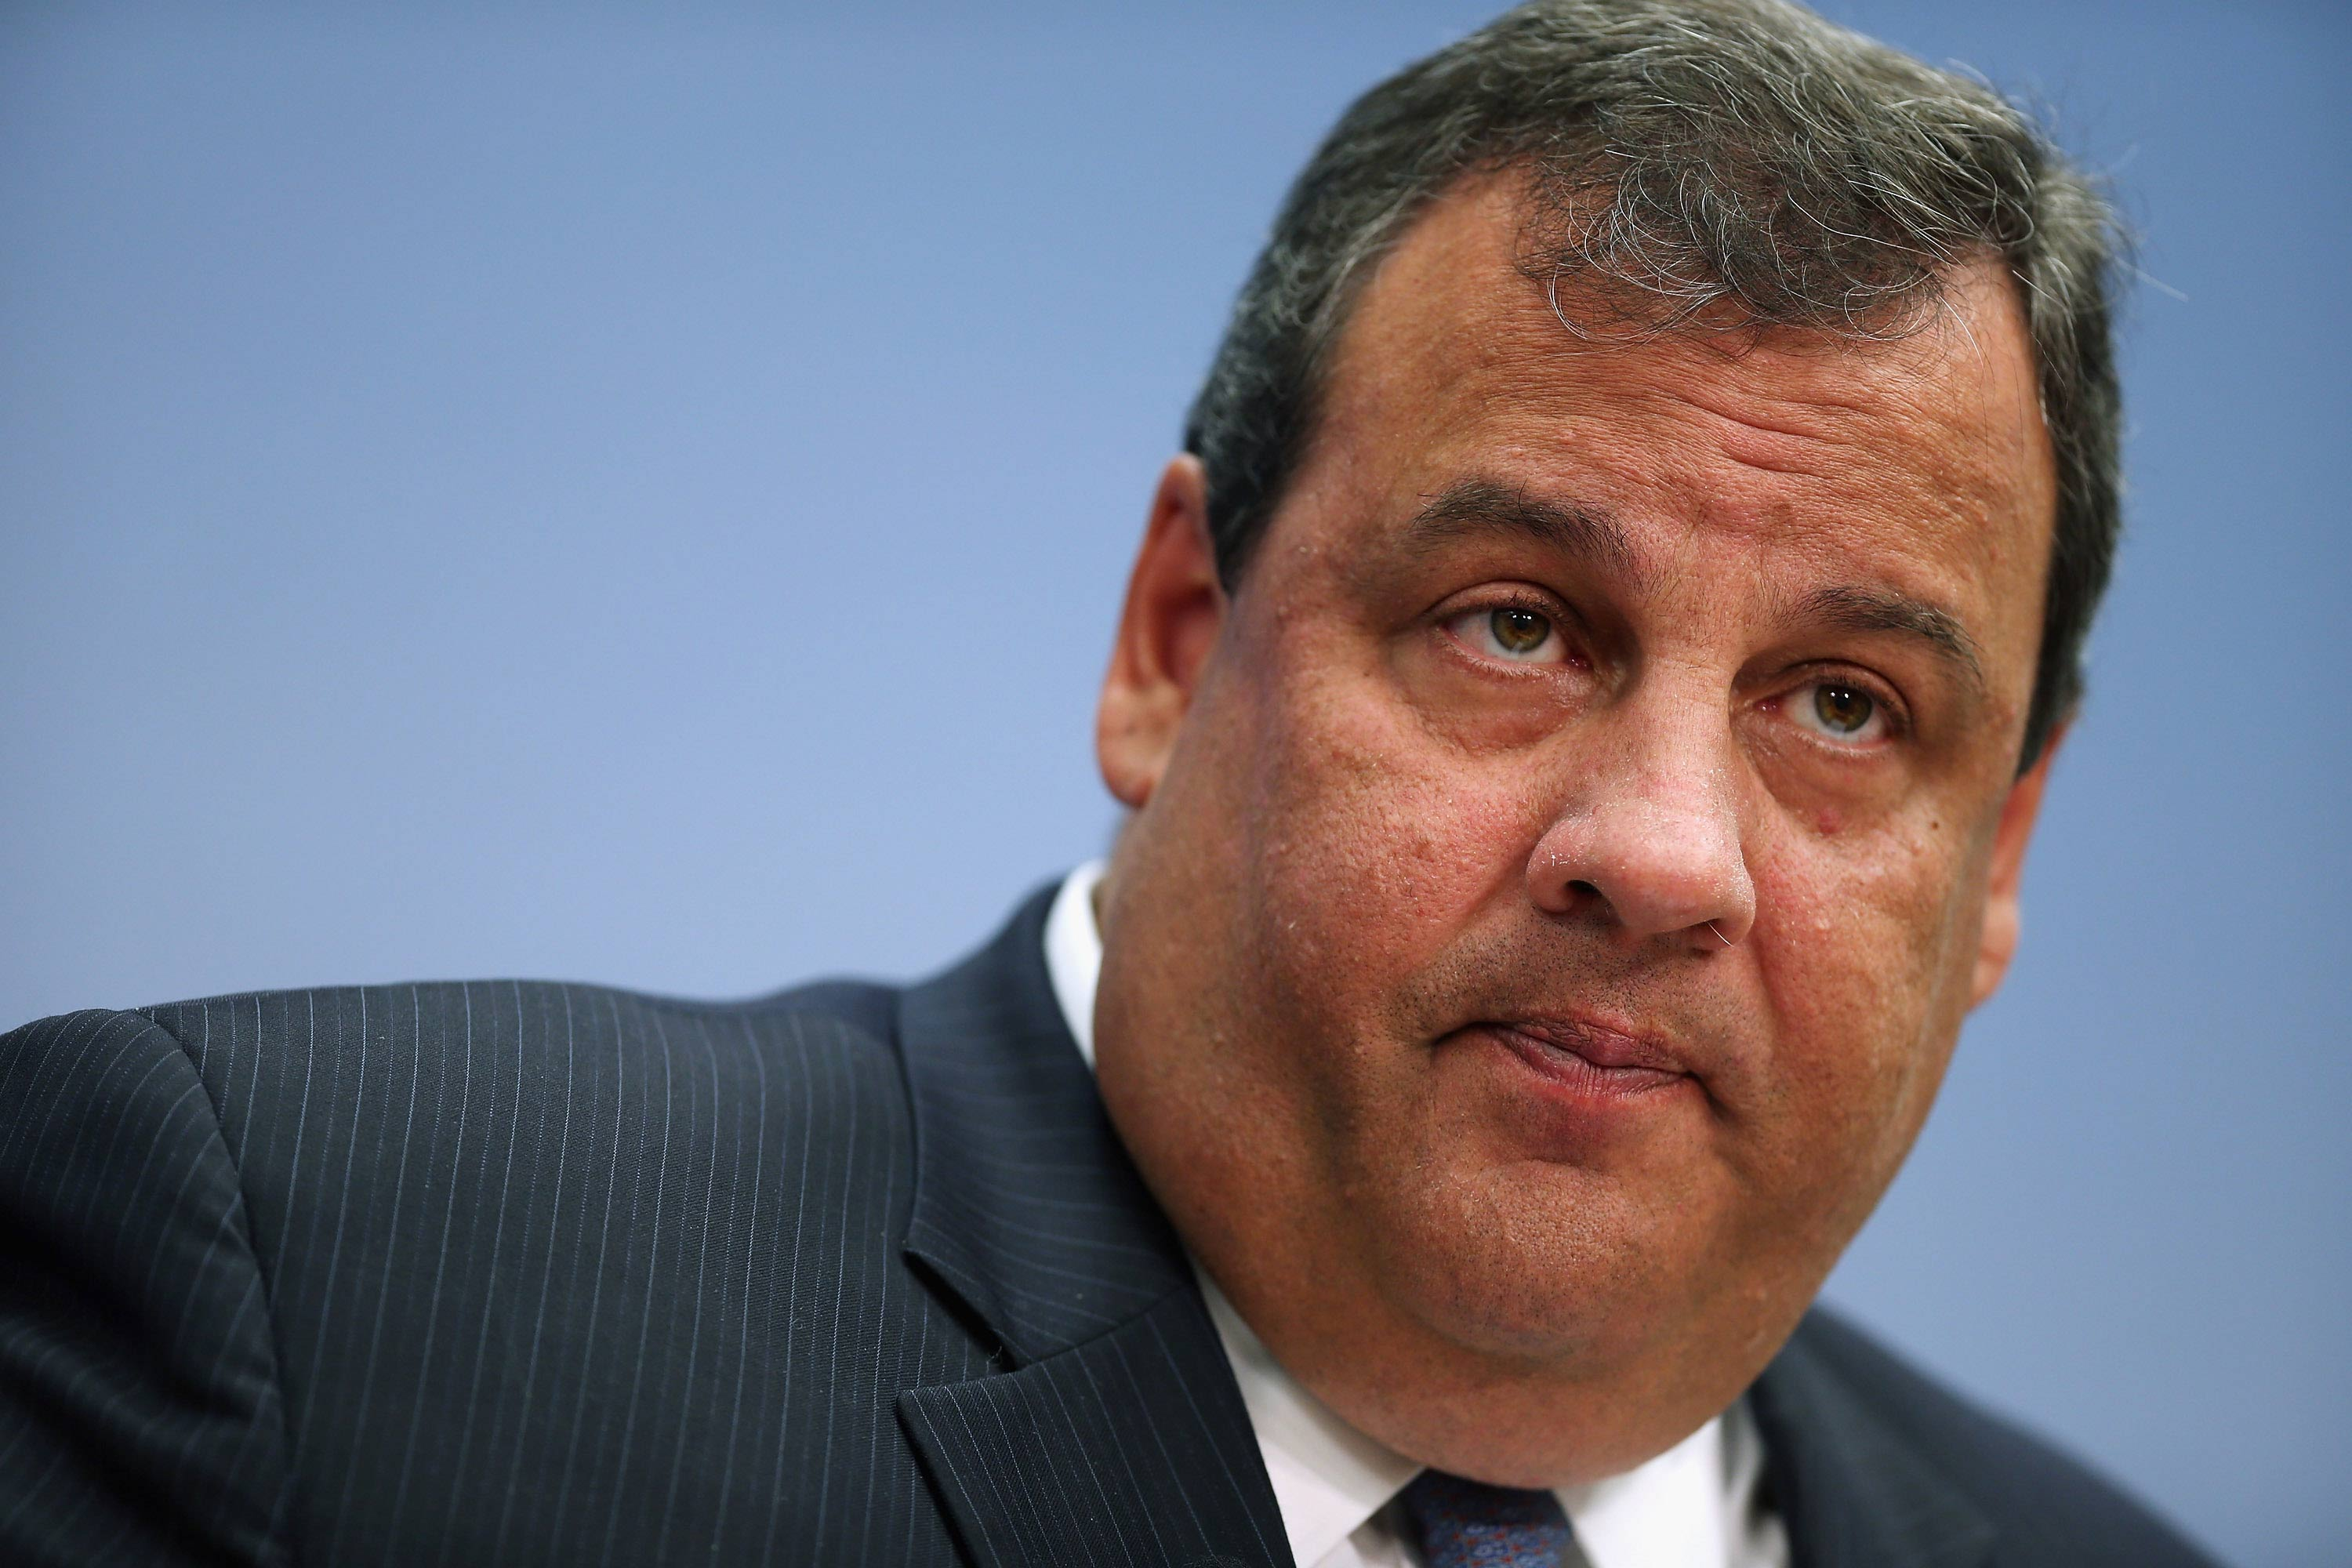 """WASHINGTON, DC - JULY 09:  New Jersey Gov. Chris Christie delivers remarks and answers questions at the Brookings Institution, a non-partisan, public policy think tank, July 9, 2012 in Washington, DC. Christie, whose name has been mentioned among possible GOP vice presidential choices, talked about his self-described """"New Jersey Comback,"""" and a fiscal record """"...including three balanced budgets, a two-percent hard cap on property taxes and landmark pension and health benefits reform.""""  (Photo by Chip Somodevilla/Getty Images)"""